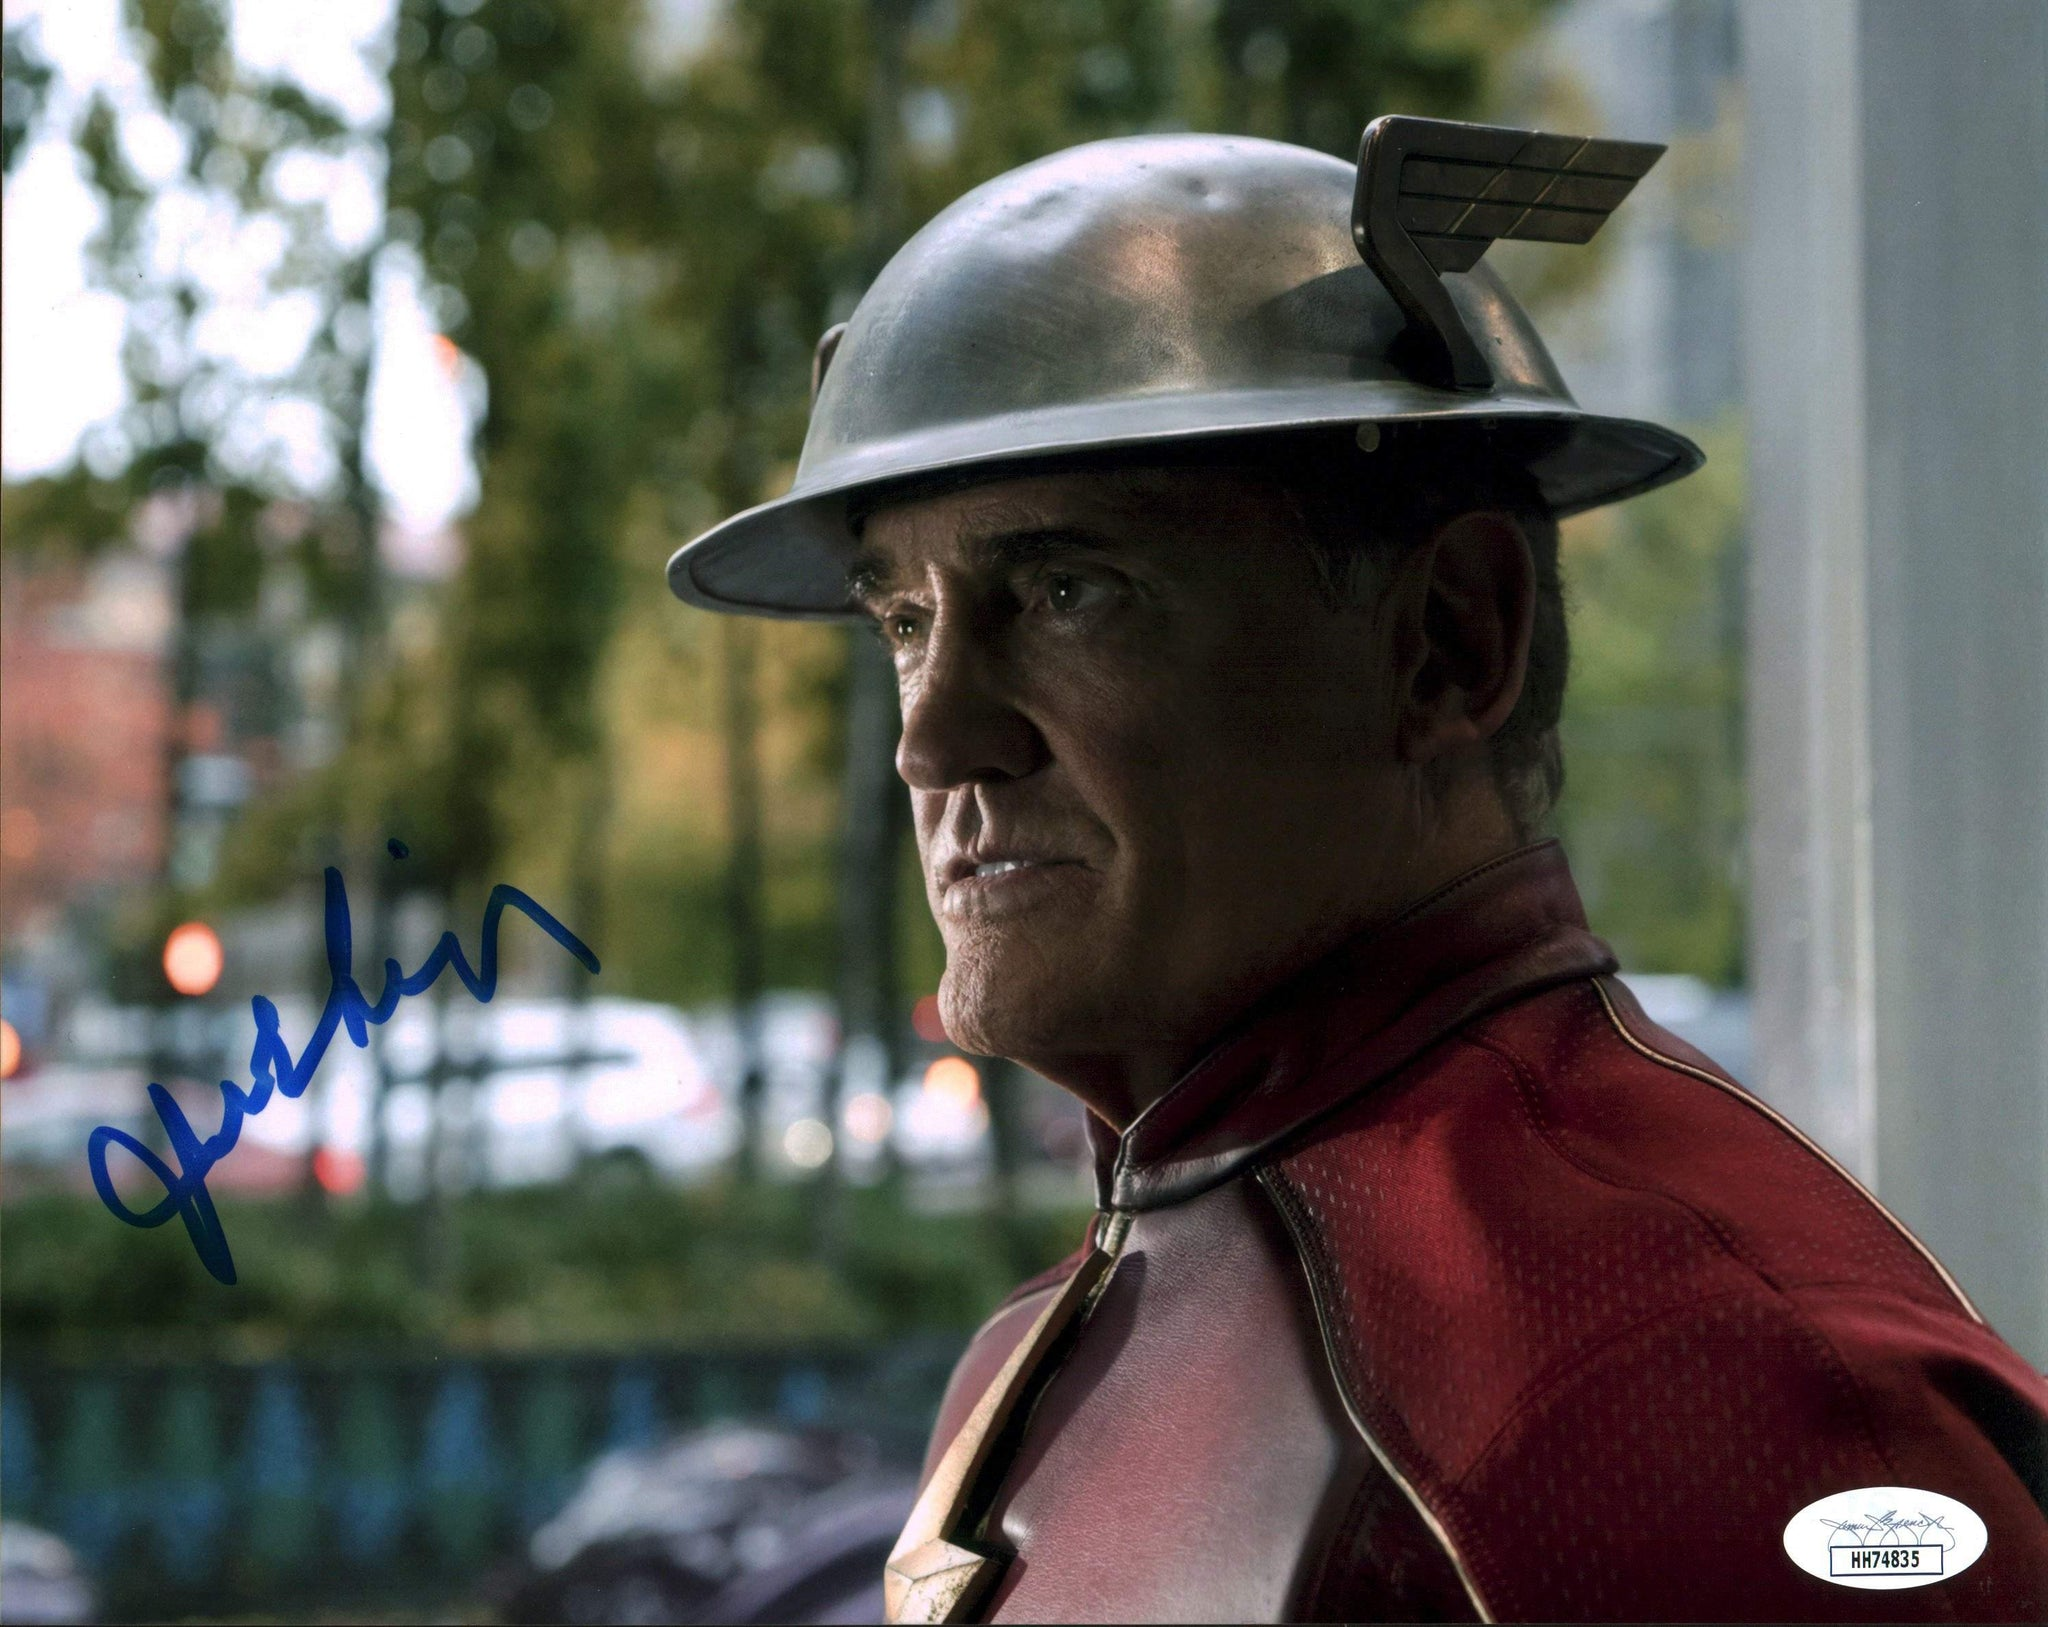 John Wesley Shipp The Flash 8x10 Photo Signed Autographed JSA Certified COA GalaxyCon